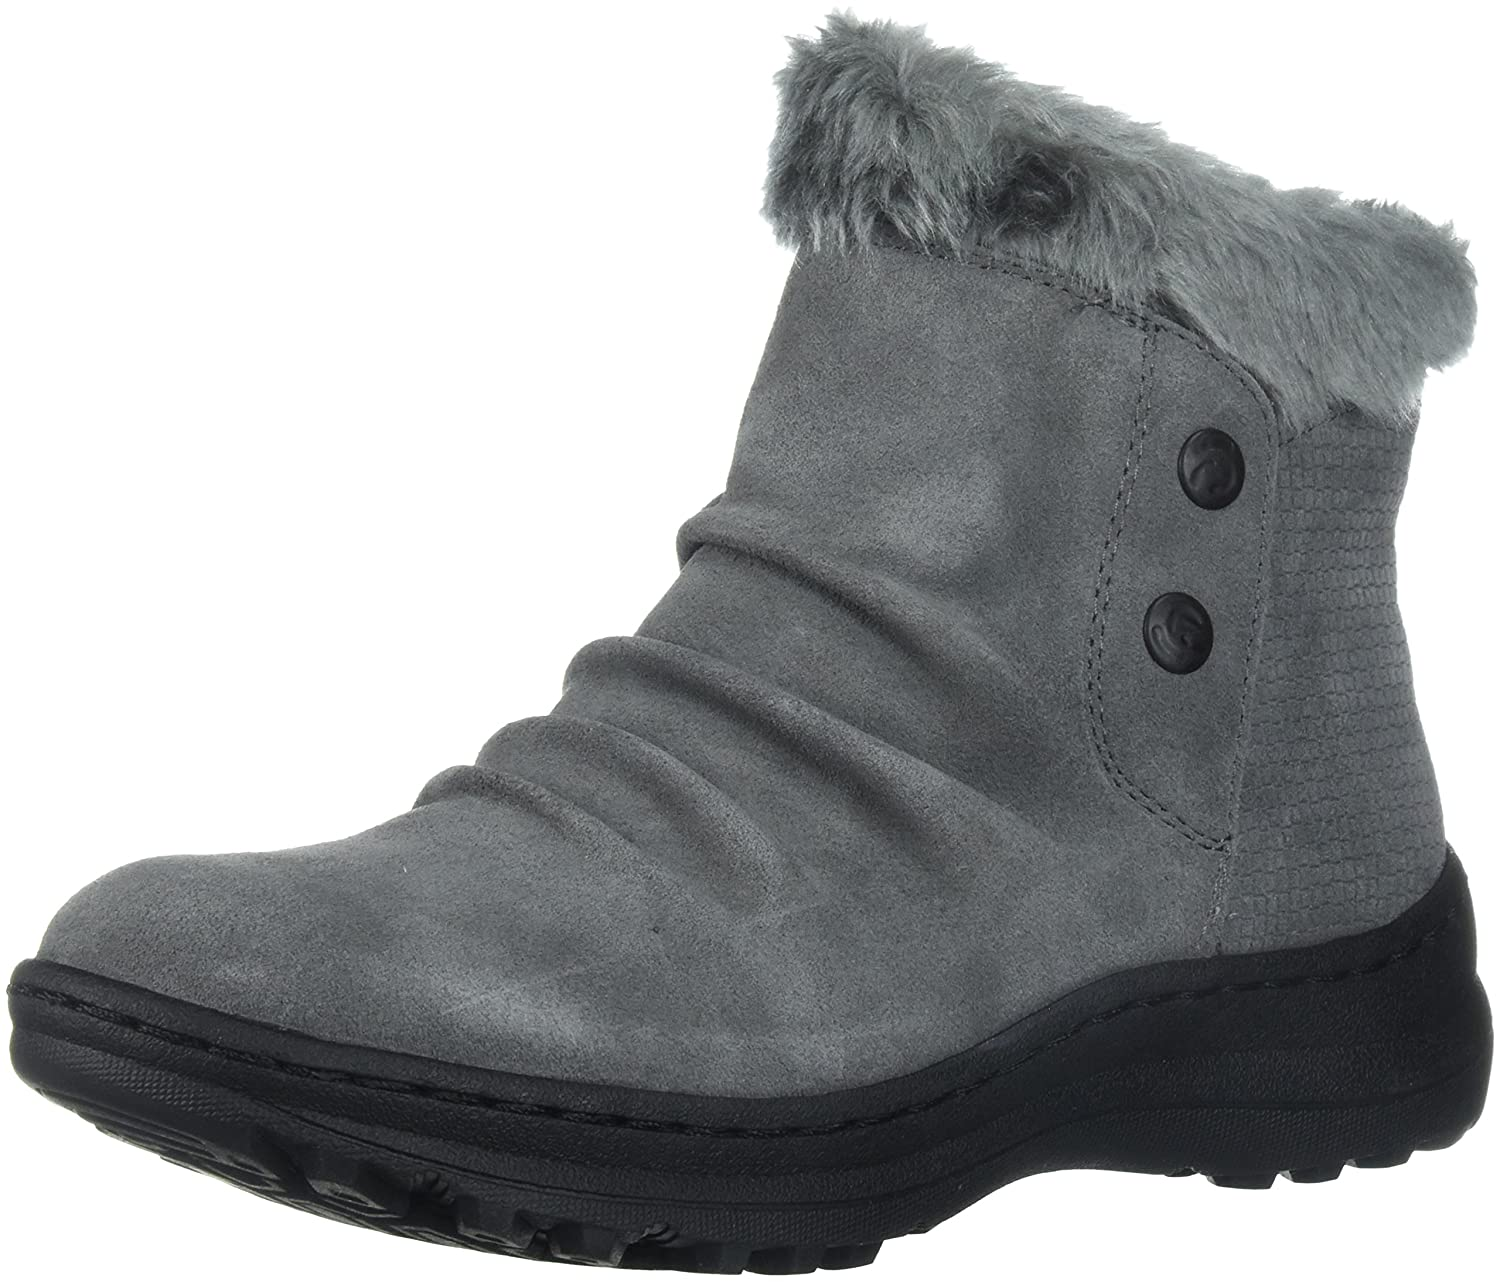 BareTraps Women's ANI Snow Boot B071L3YR5N 7 B(M) US|Dk Grey